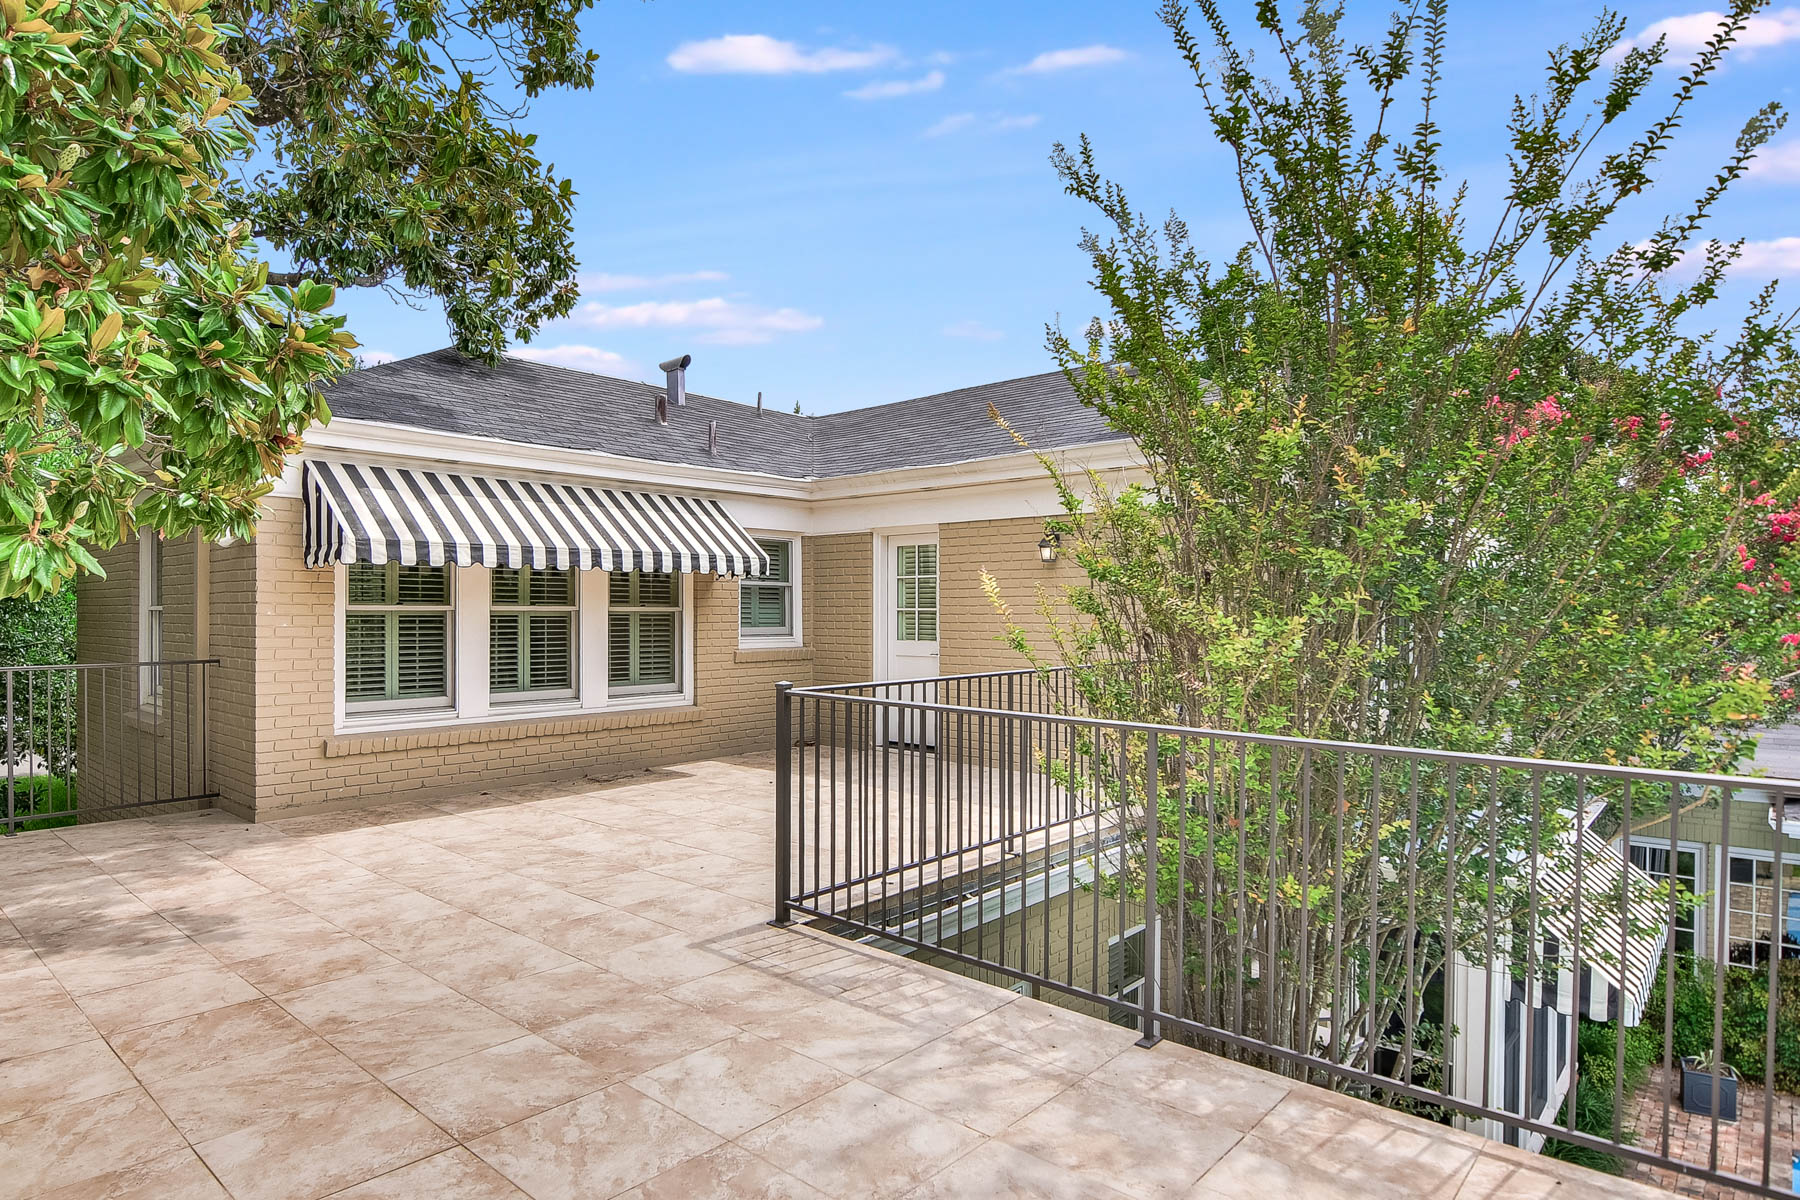 Additional photo for property listing at Magnificent Home in the Heart of Olmos Park 214 E Mandalay Dr San Antonio, Texas 78212 United States